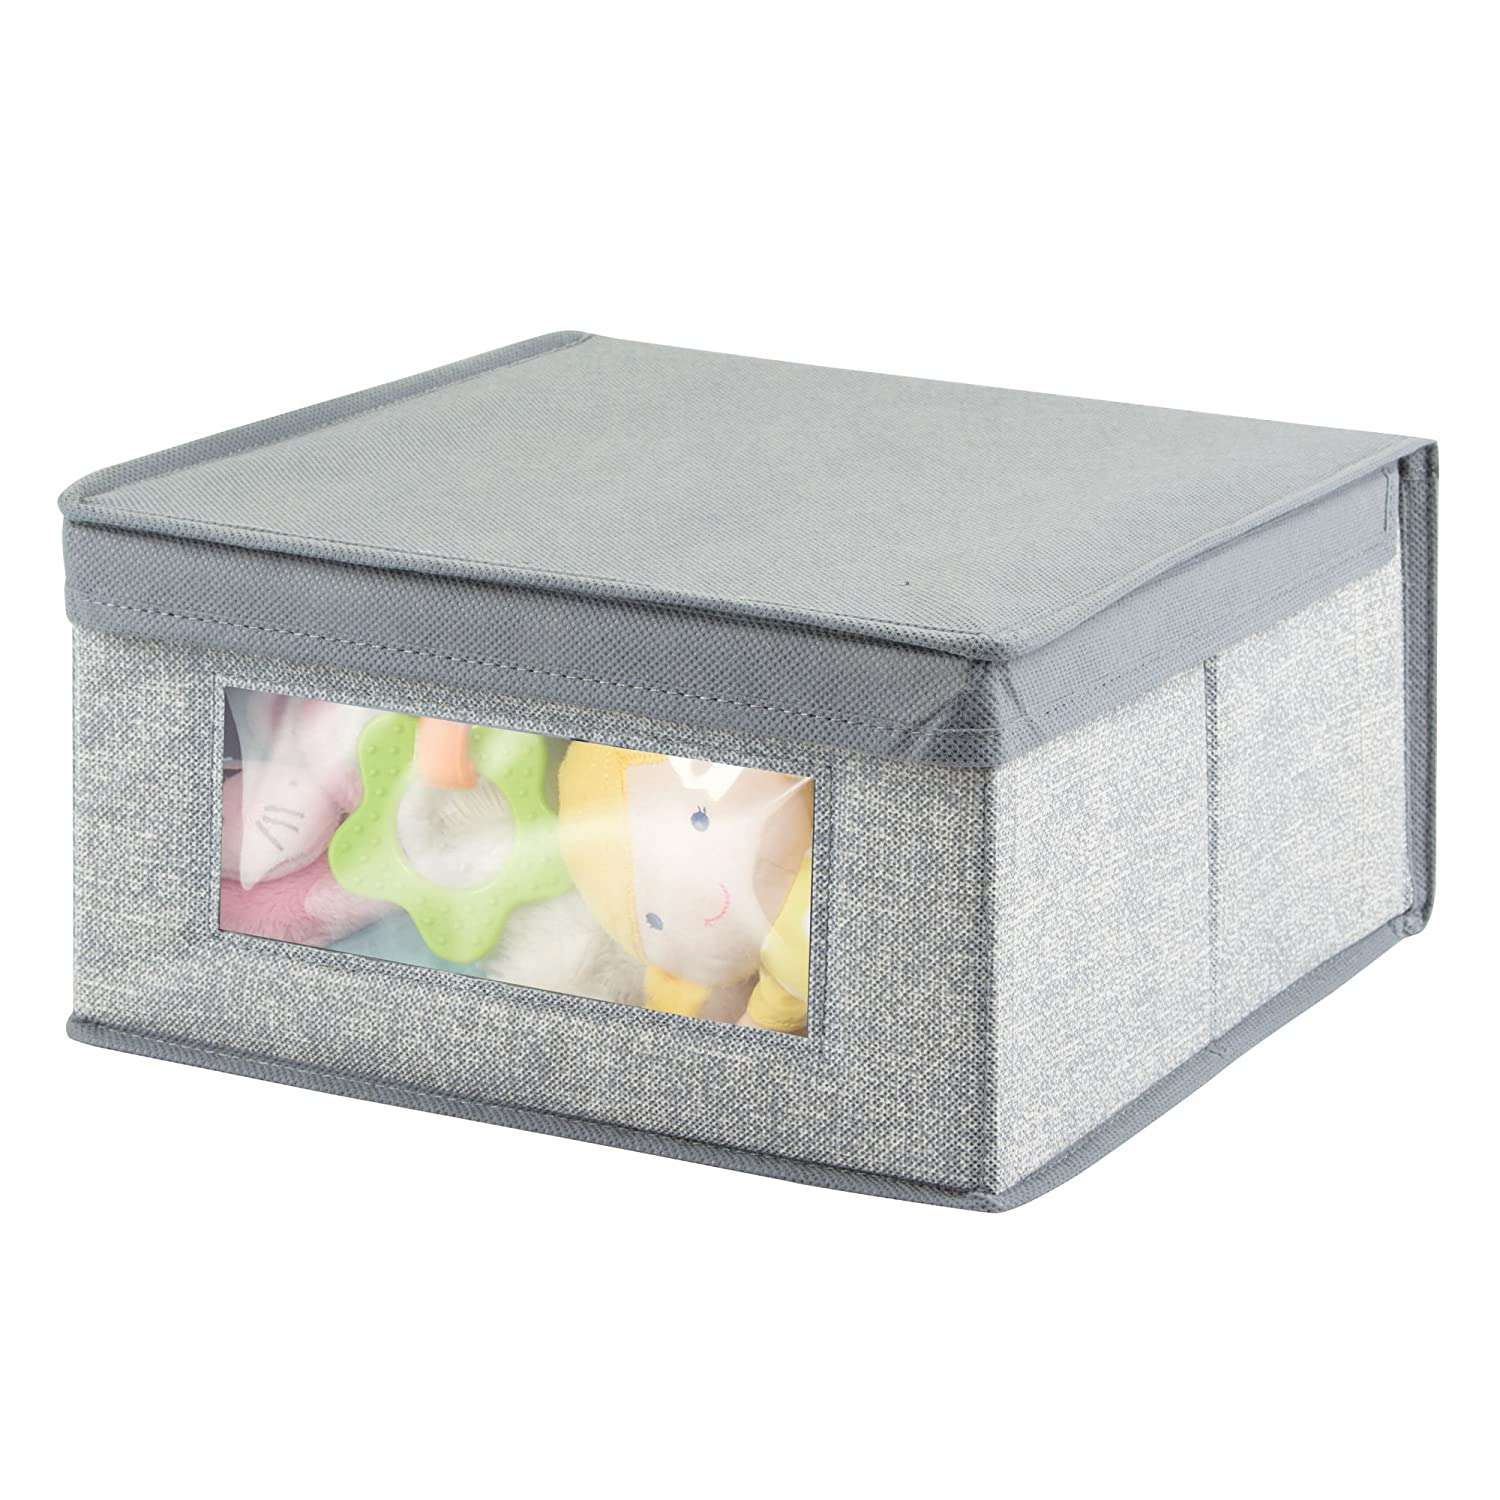 Nursery for Child//Kids Room mDesign Soft Stackable Fabric Closet Storage Organizer Holder Box Gray MetroDecor 2271MDB Small Textured Print Attached Lid Clear Window 2 Pack